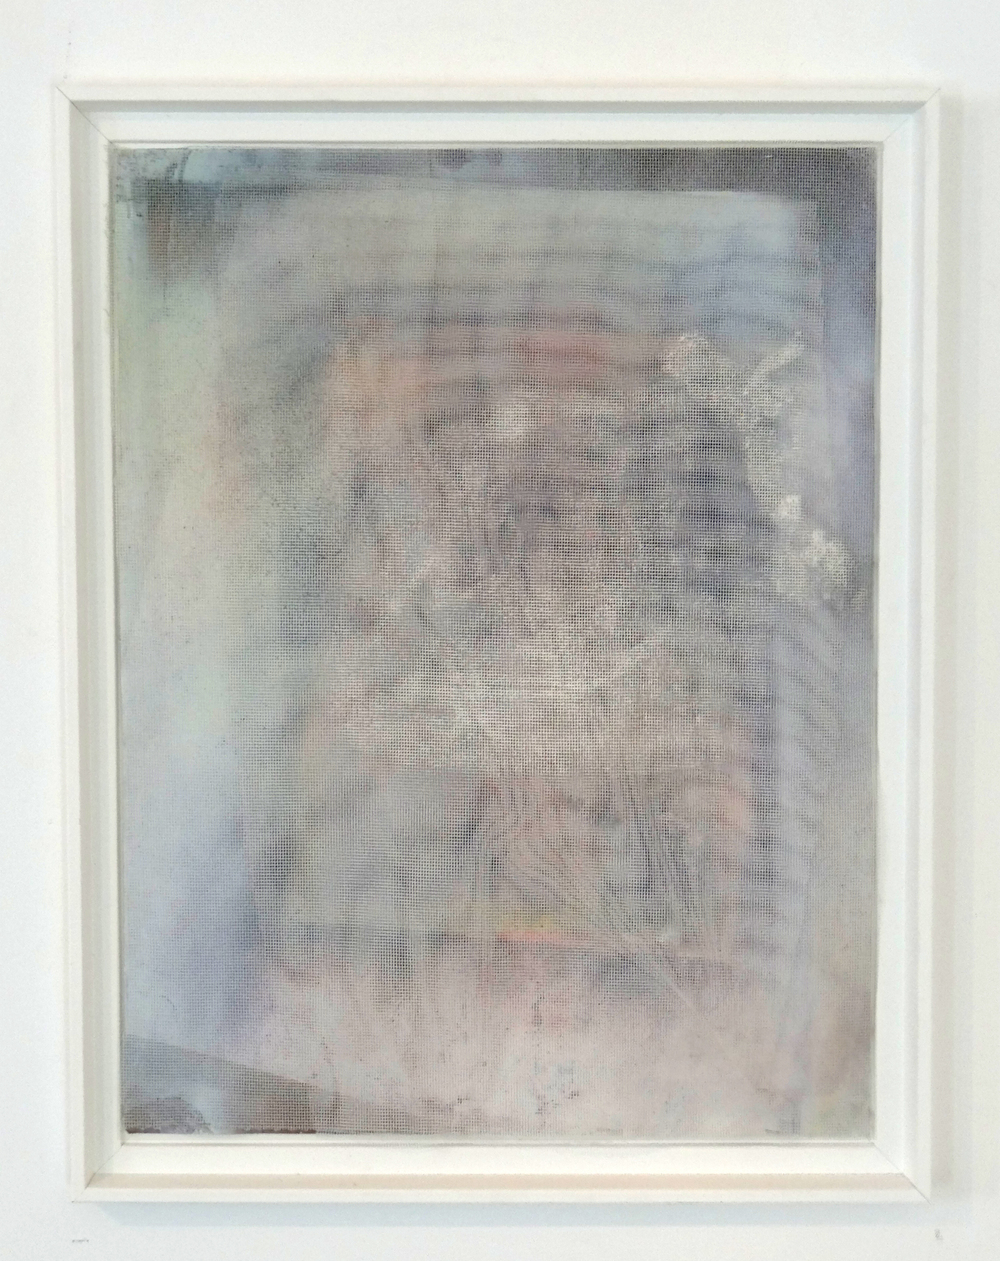 Bruno Albizzati Untitled (after), 2014 Pastels and acrylic paint on paper and fabric, 65 x 50 cm